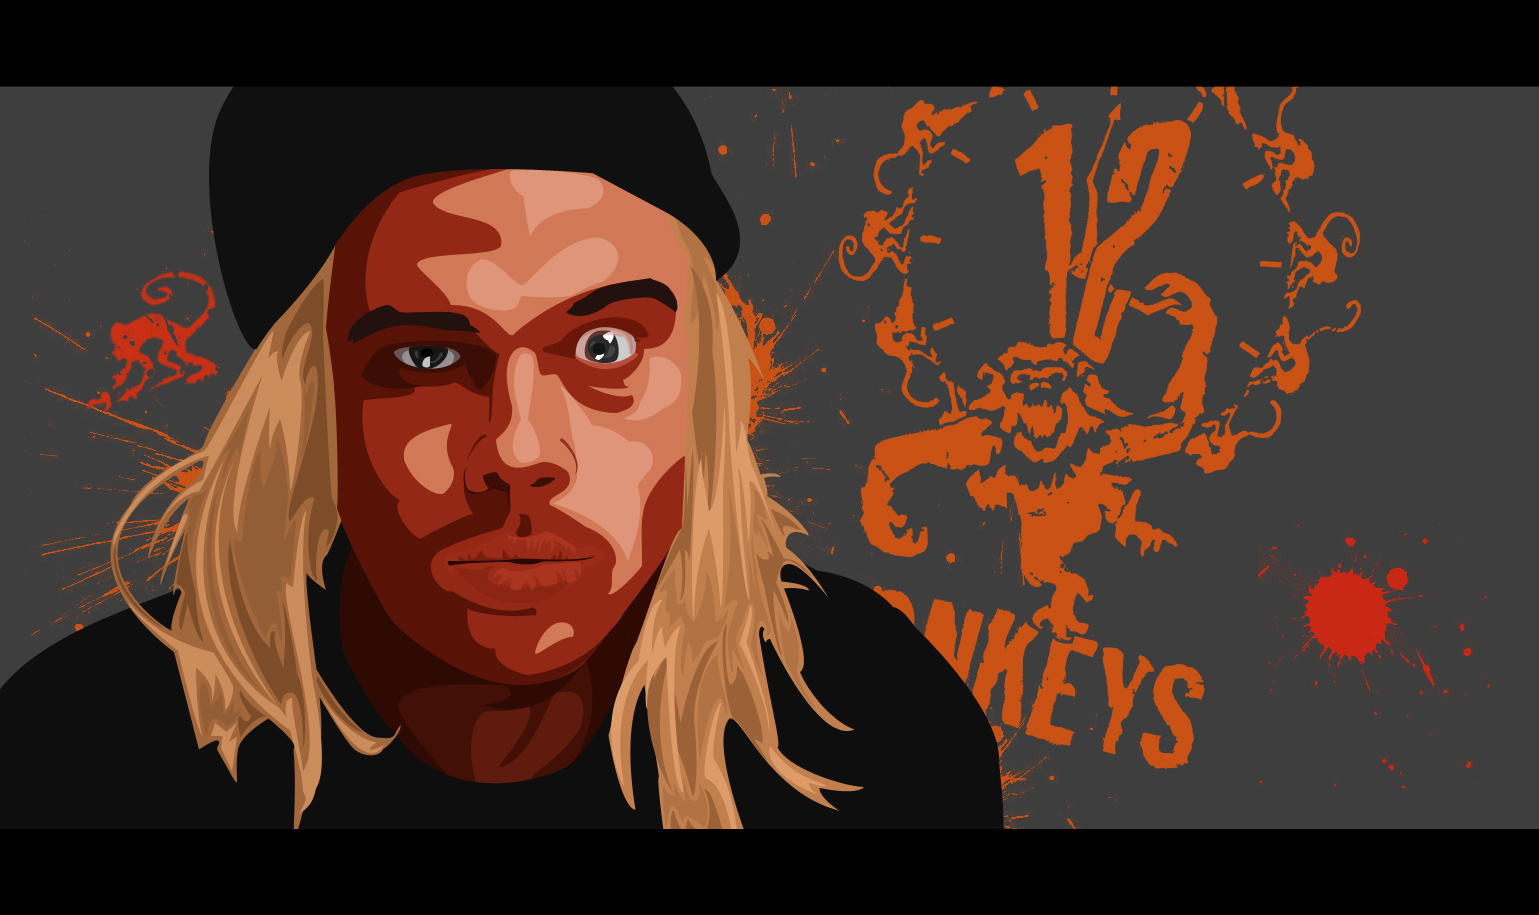 12 monkeys Wallpaper and Background | 1539x915 | ID:499130